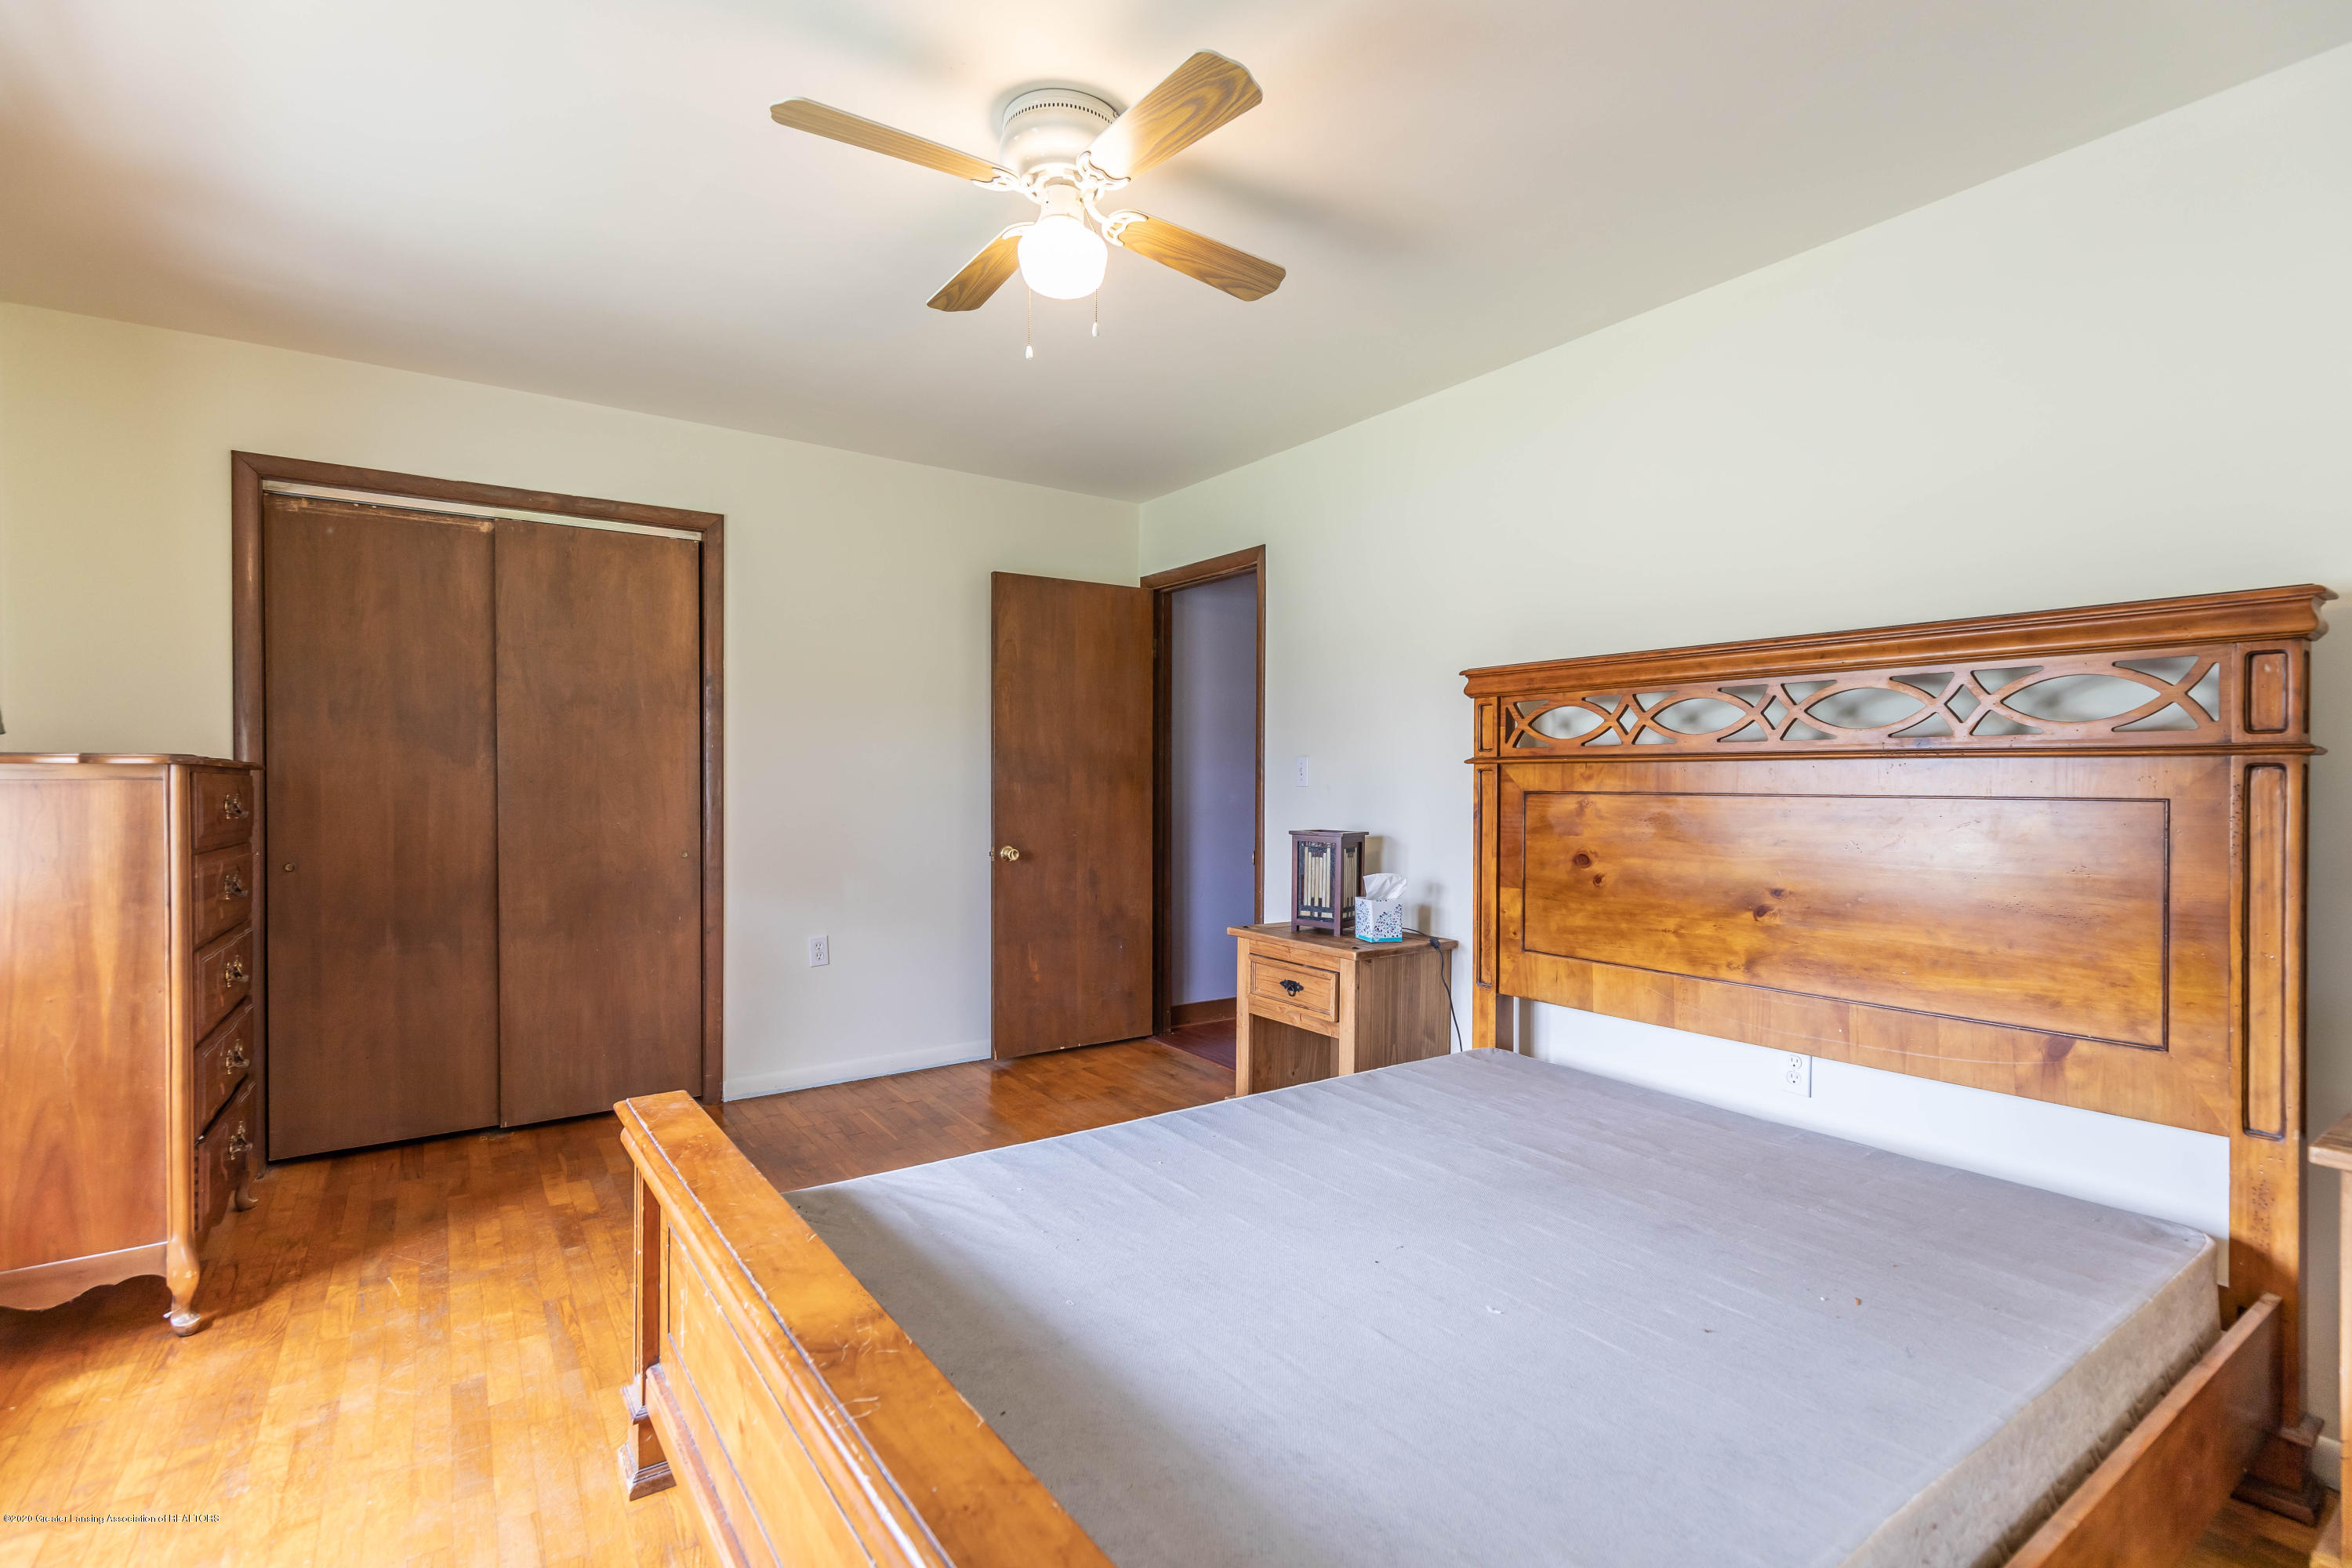 4790 W Grand River Rd - grandriverbed31 (1 of 1) - 24